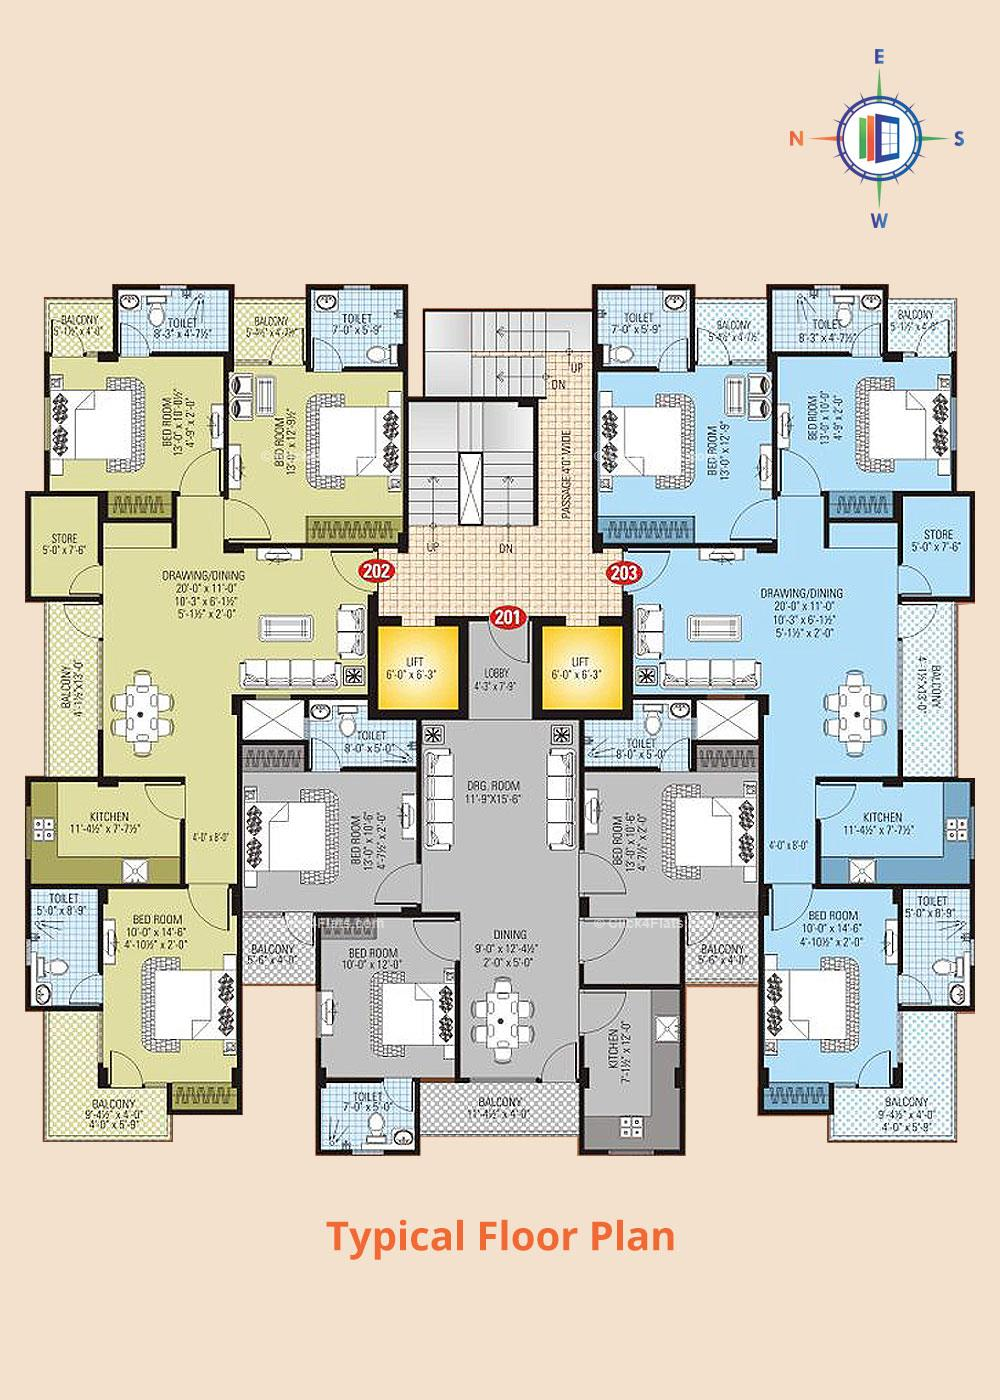 SDC Dav Typical Floor Plan